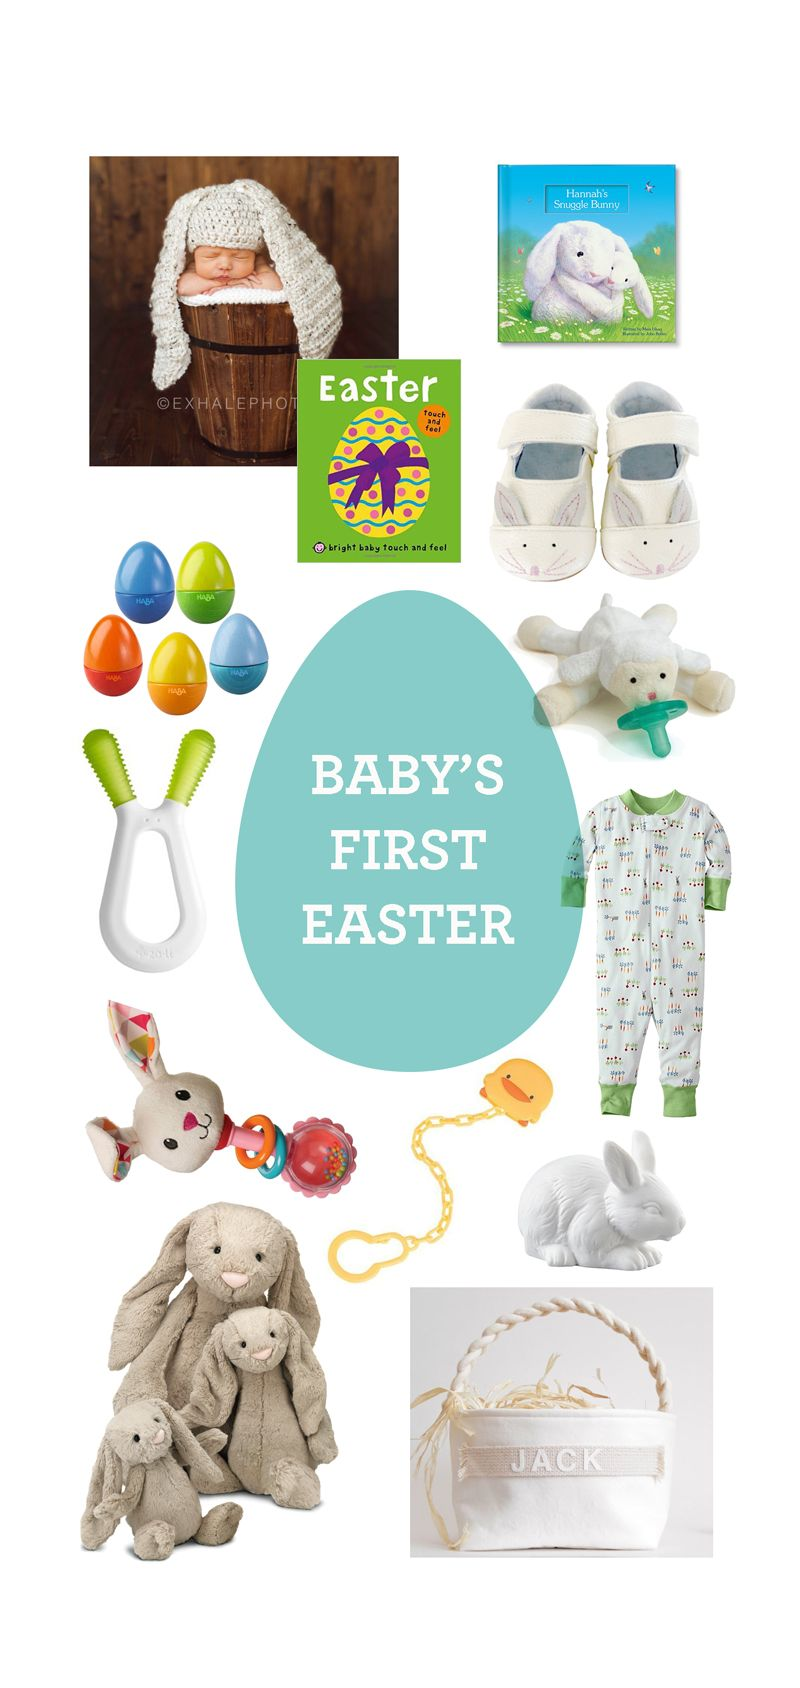 Babys first easter easter baskets easter and babies babies inspiring easter gift ideas negle Images